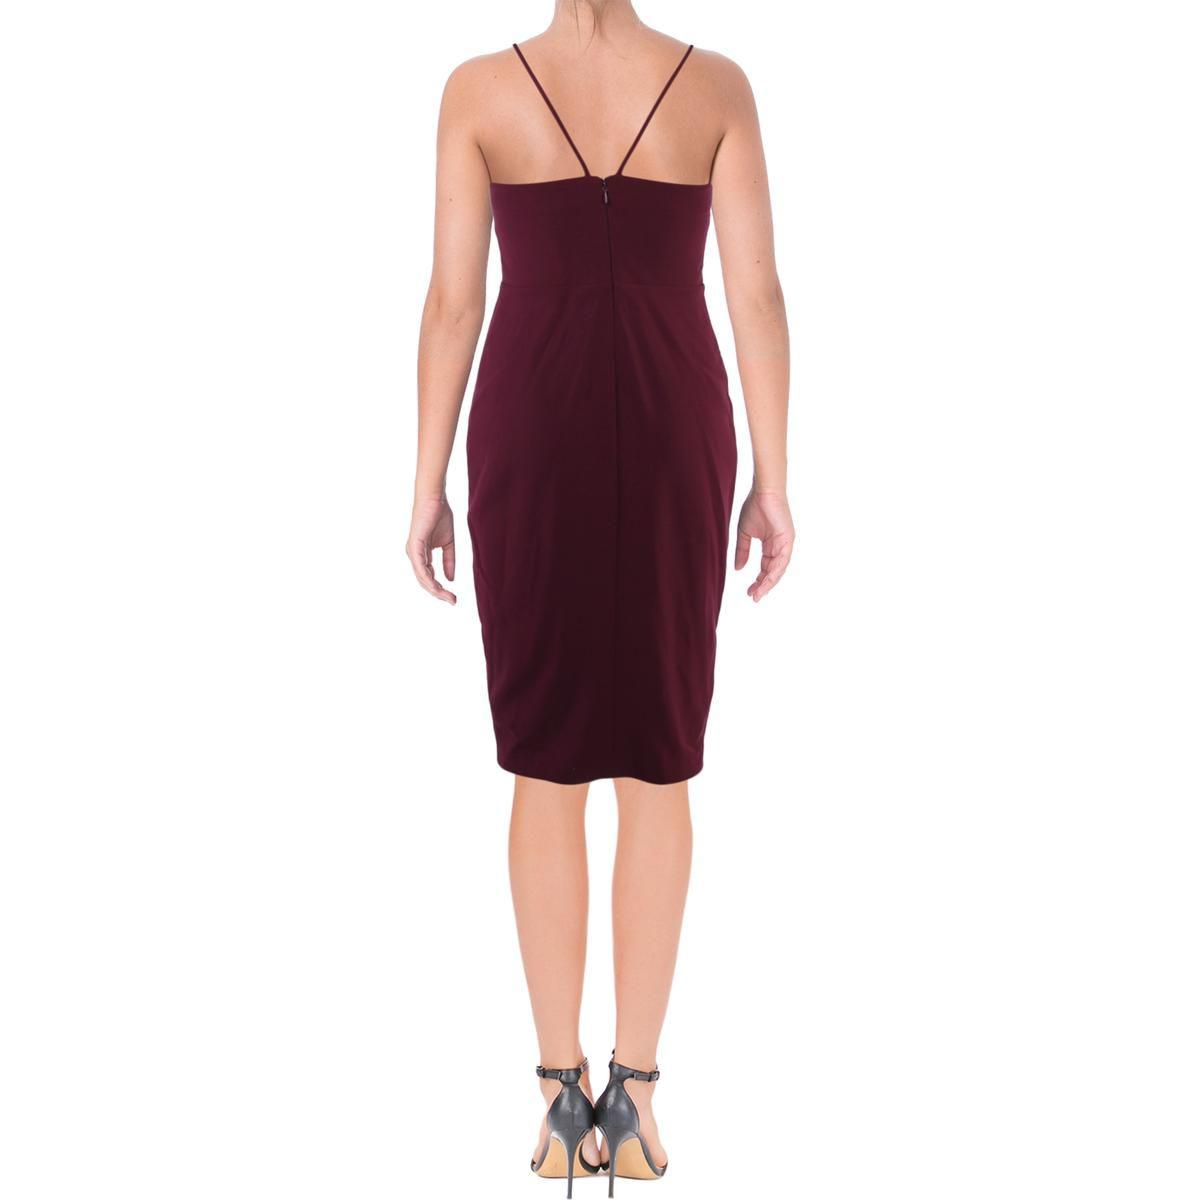 2661b518e4 Likely - Purple Womens Brooklyn Knee-length Party Cocktail Dress - Lyst.  View fullscreen